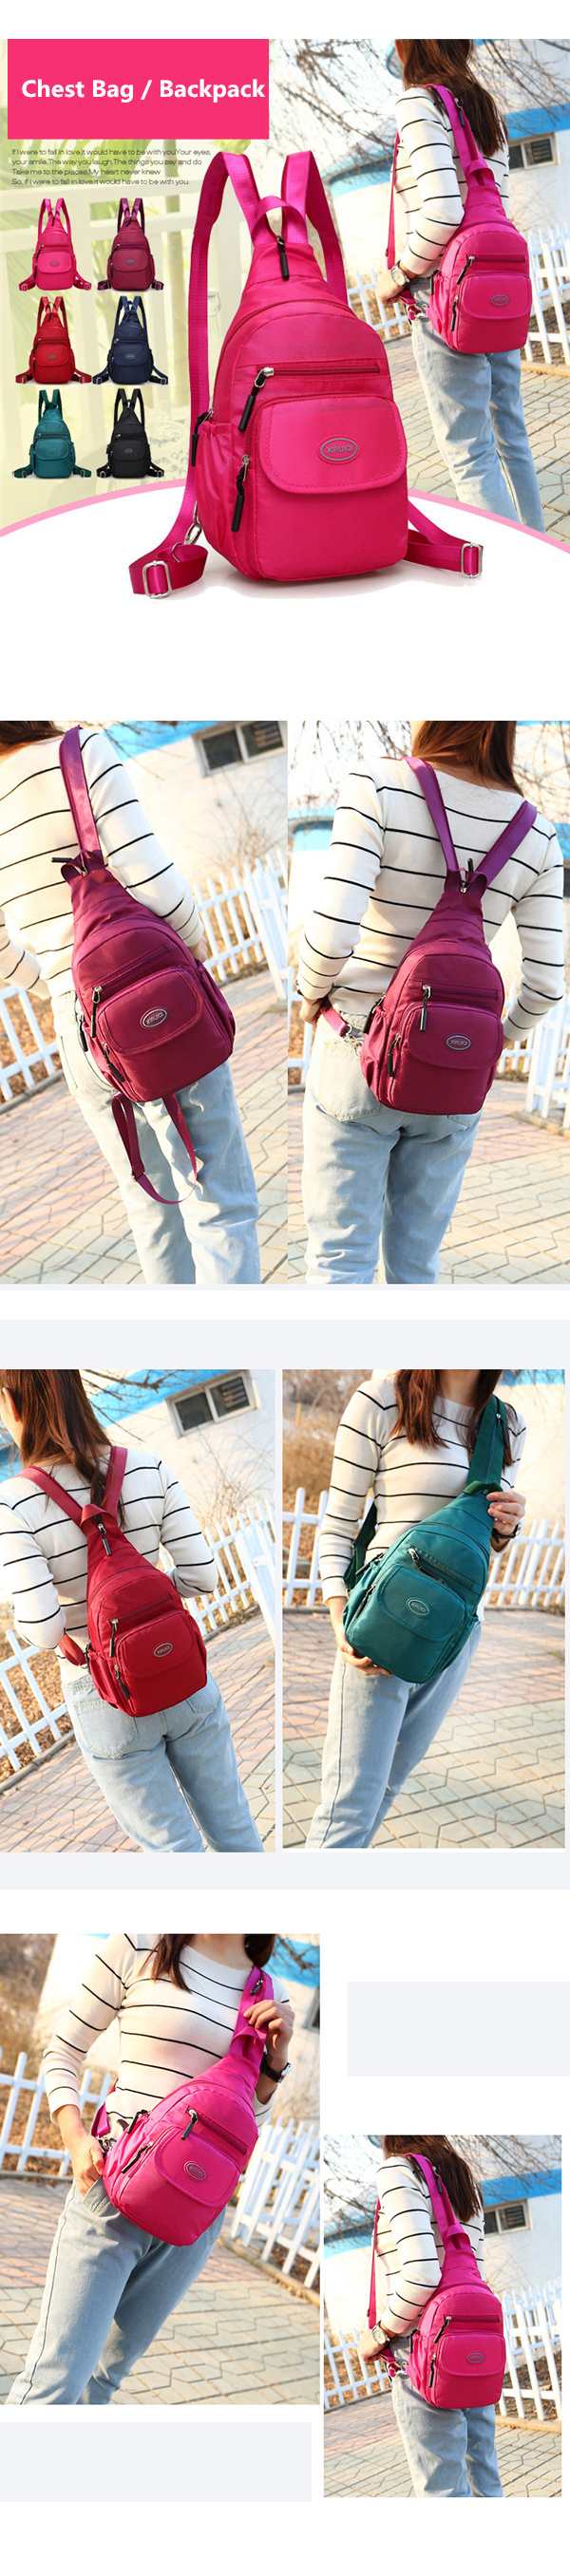 Women Nylon Light Chest Bags Outdoor Sports Shoulder Bags